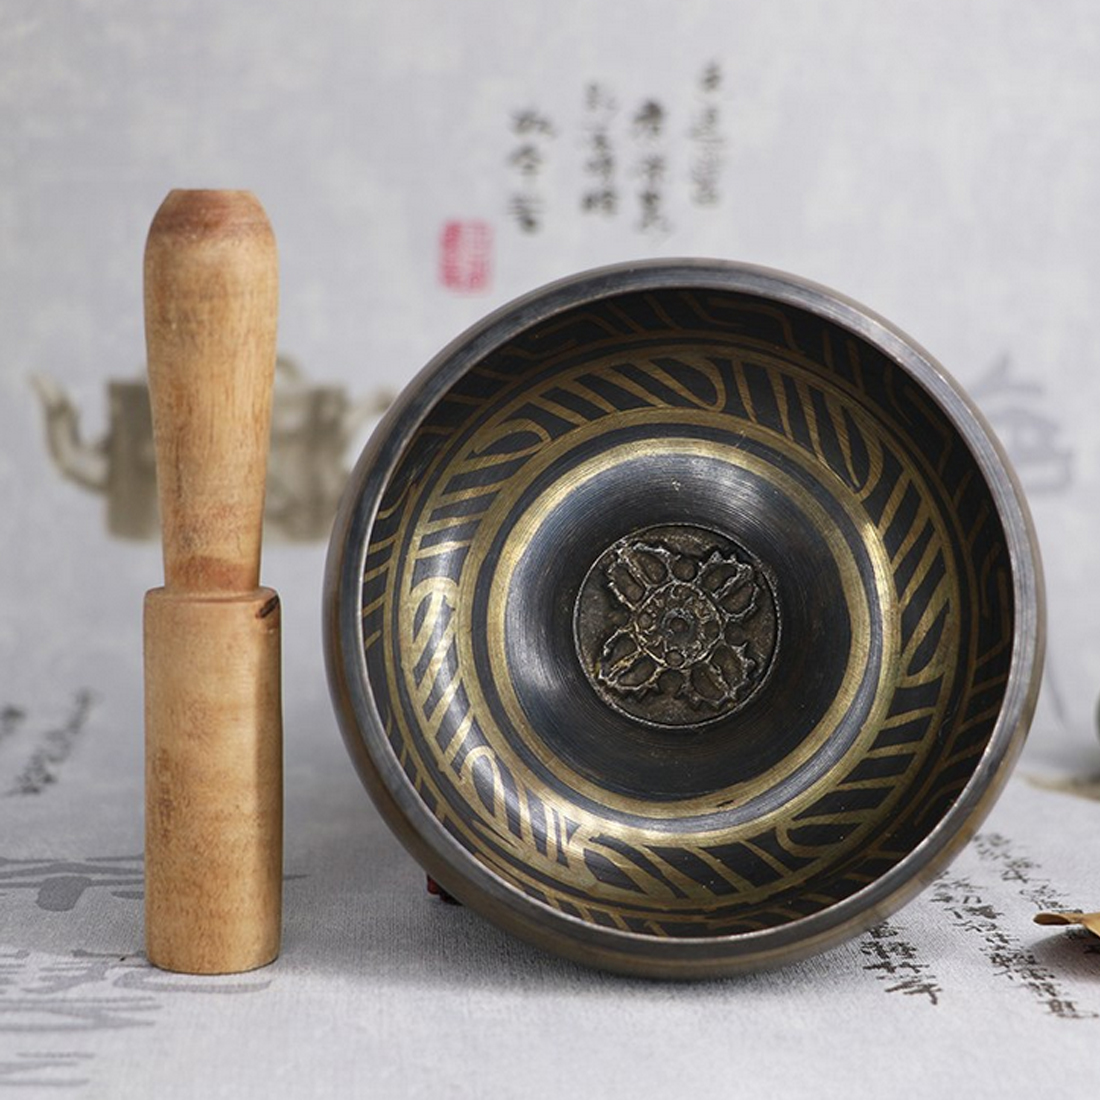 Best Sale Tibetan Bowl Singing Bowl Decorative-wall-dishes Home Decoration Decorative Wall Dishes Tibetan Singing Bowl